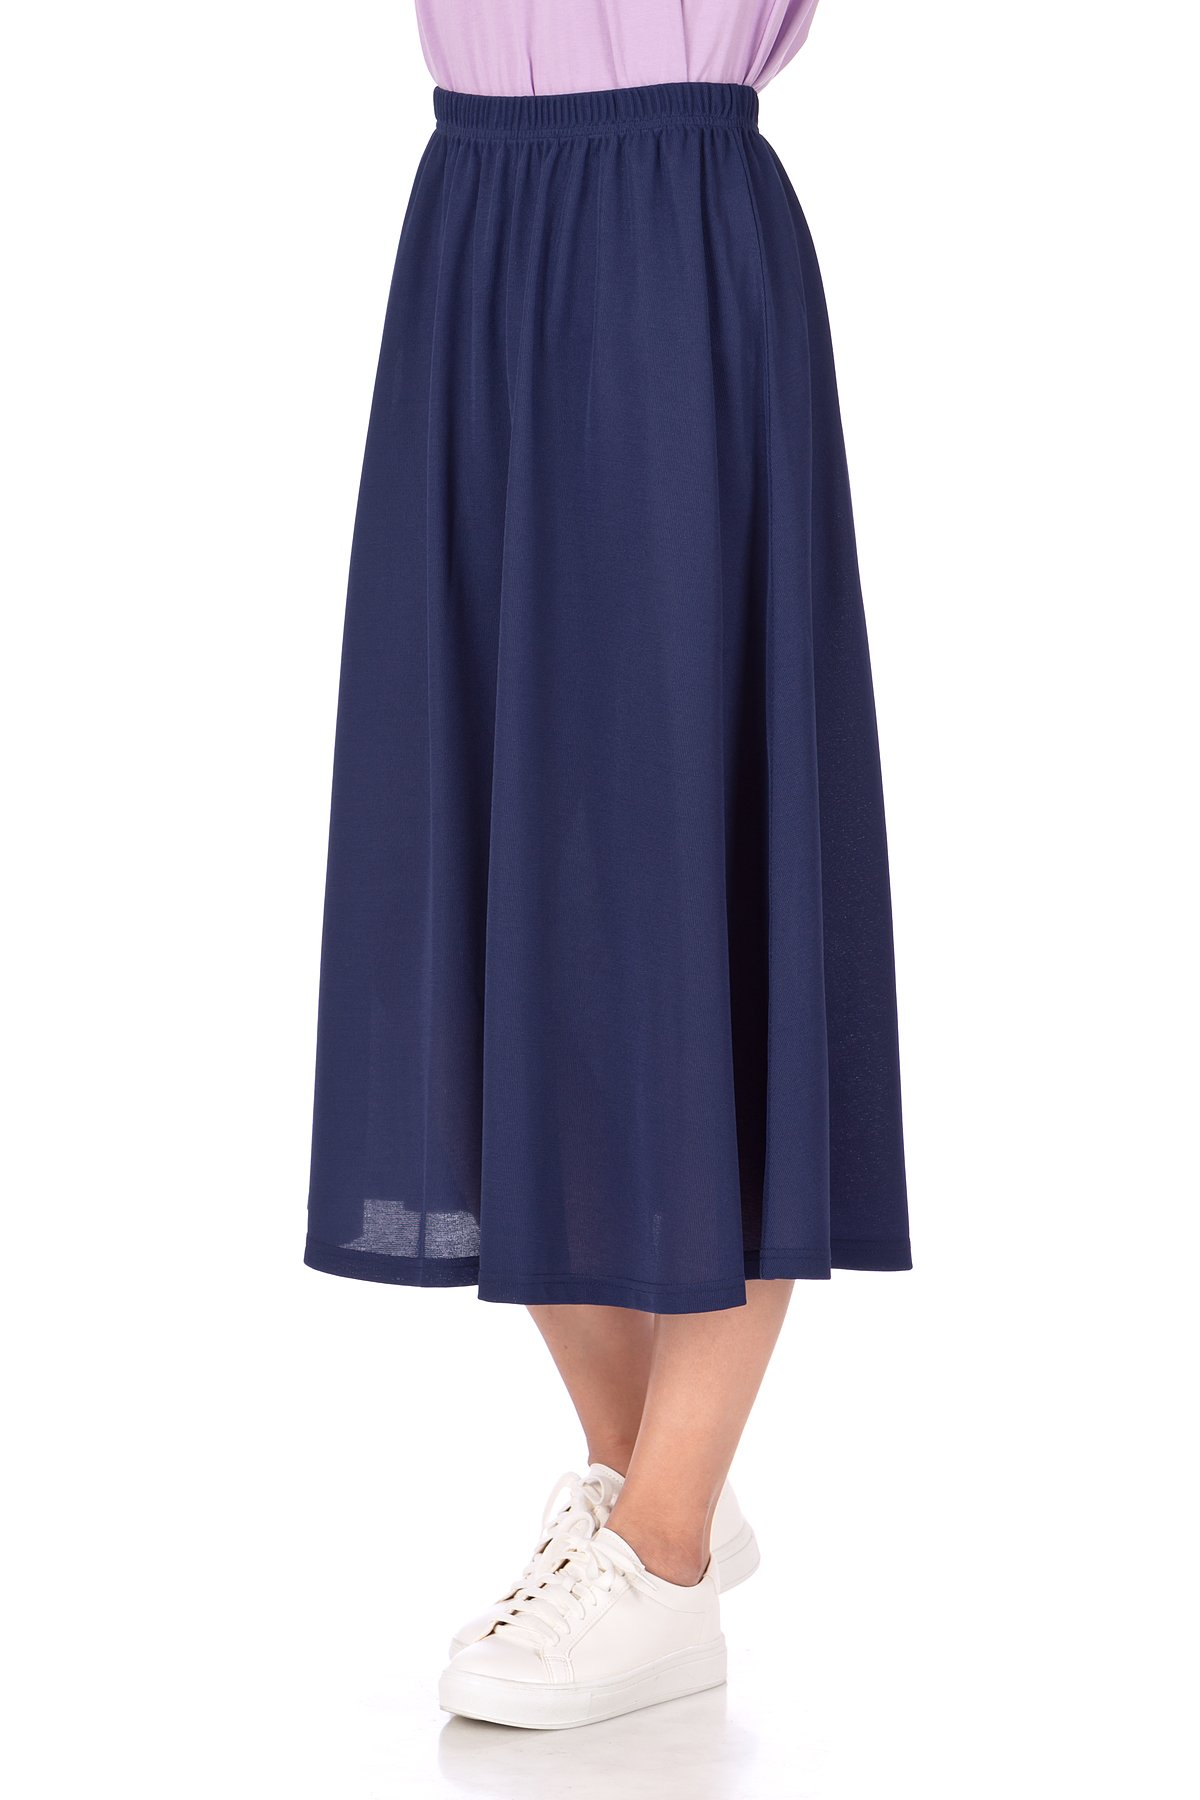 Brilliant Elastic Waist Full Flared Long Skirt Navy 05